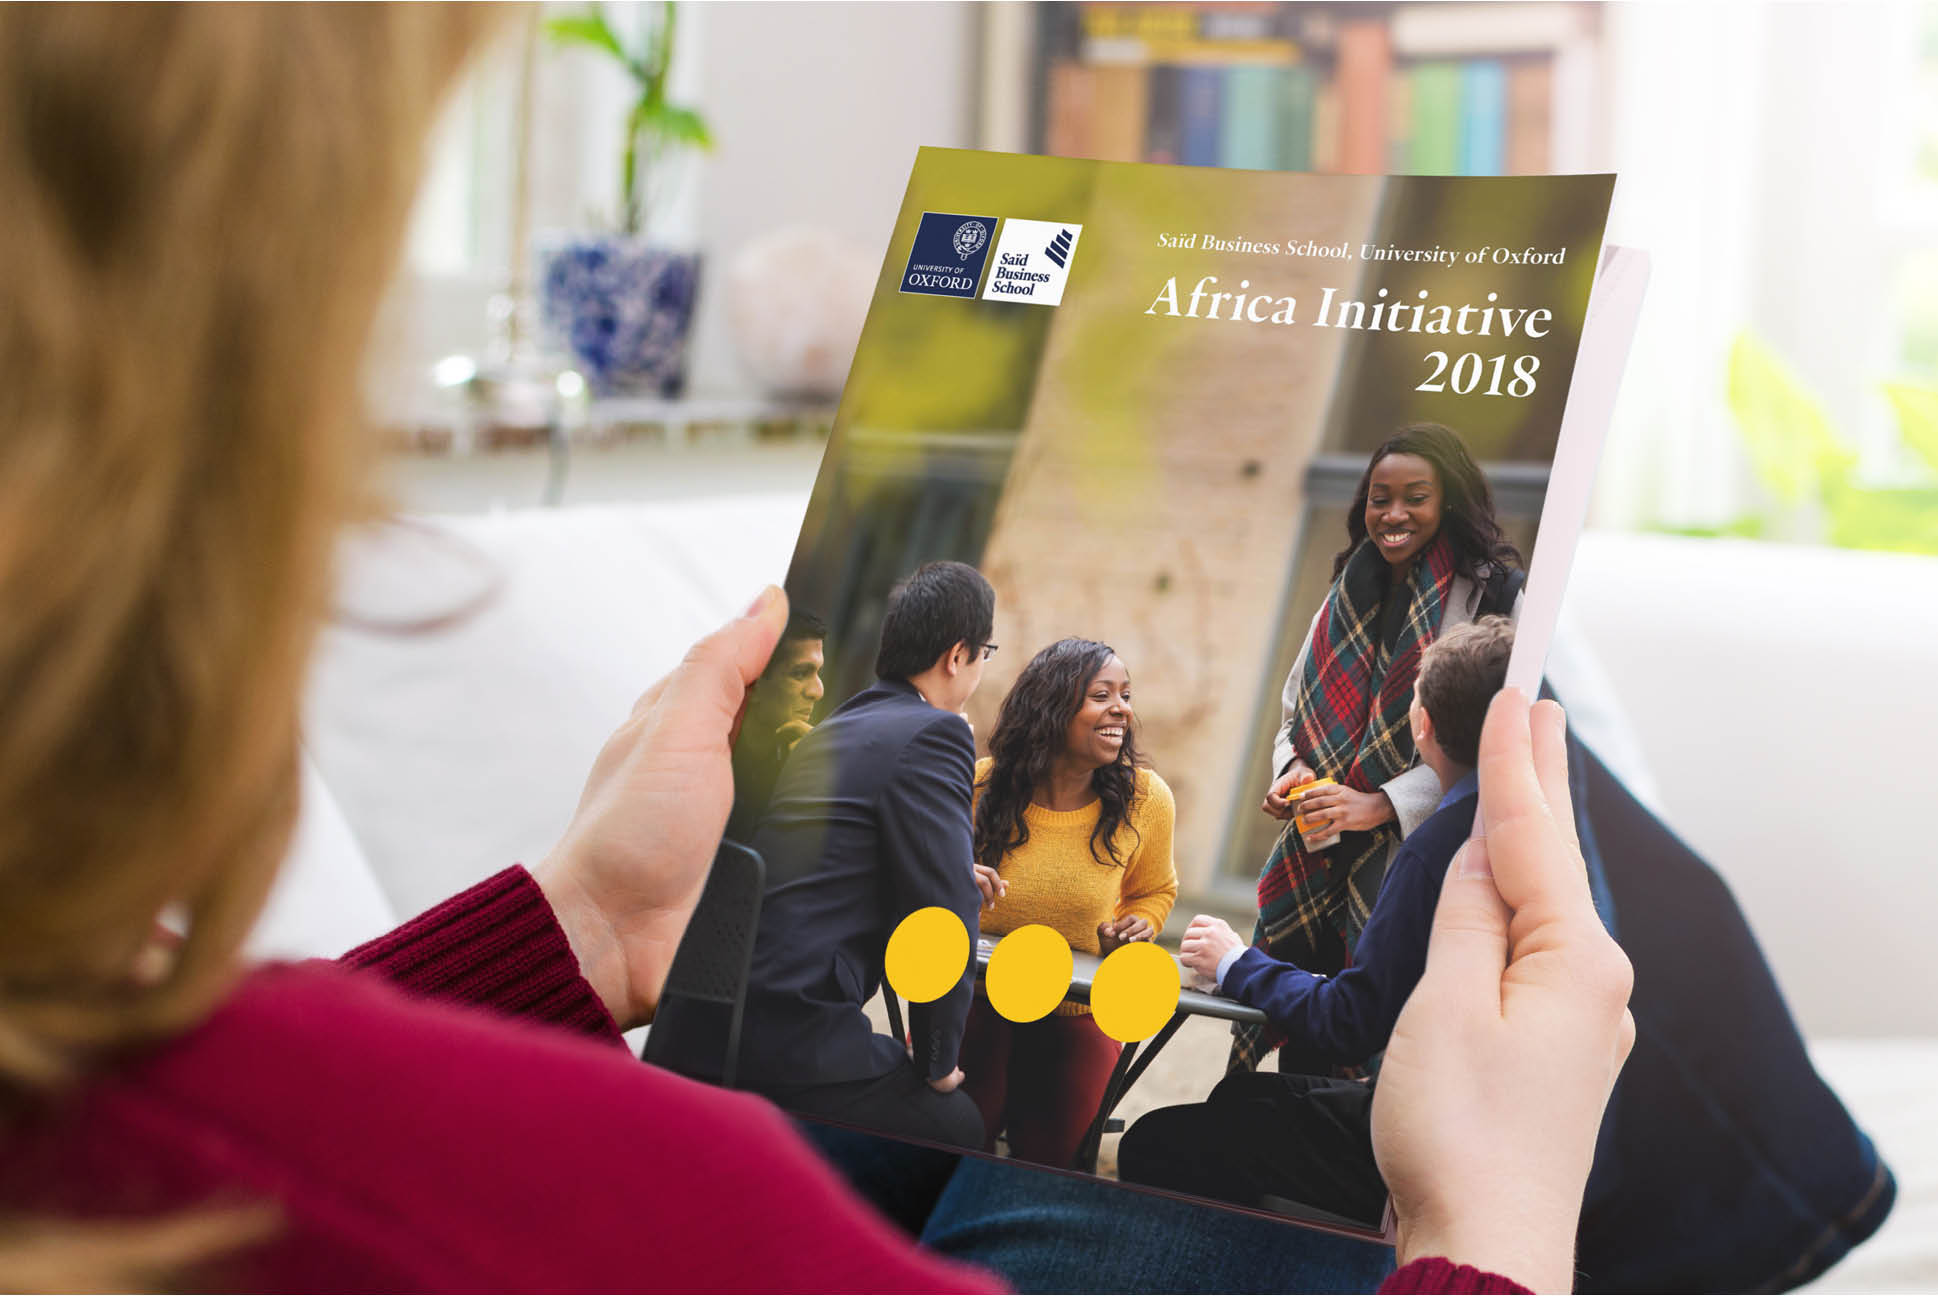 Saïd Business School Africa Initiative brochure | IM London - Independent Marketing | Education Branding London